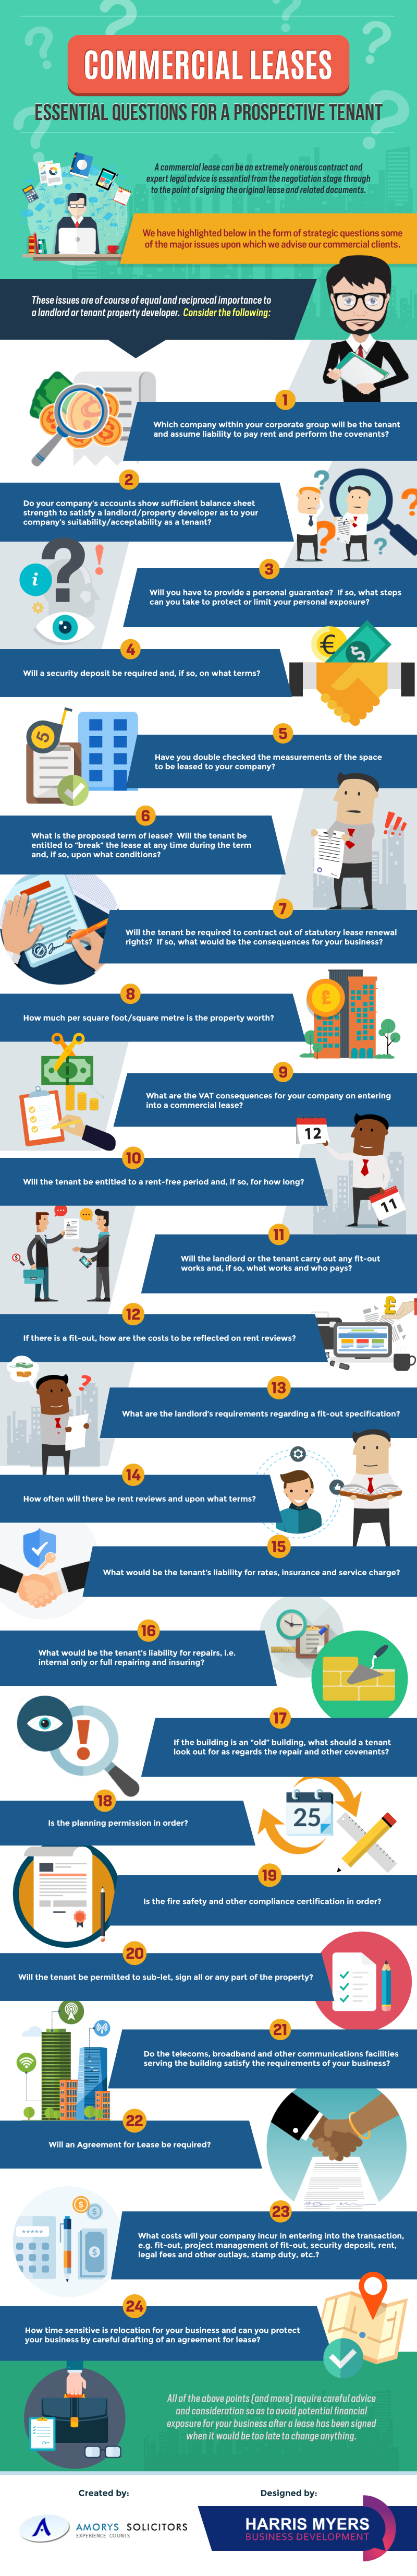 COMMERCIAL LEASES – ESSENTIAL QUESTIONS FOR A PROSPECTIVE TENANT INFO-GRAPHIC